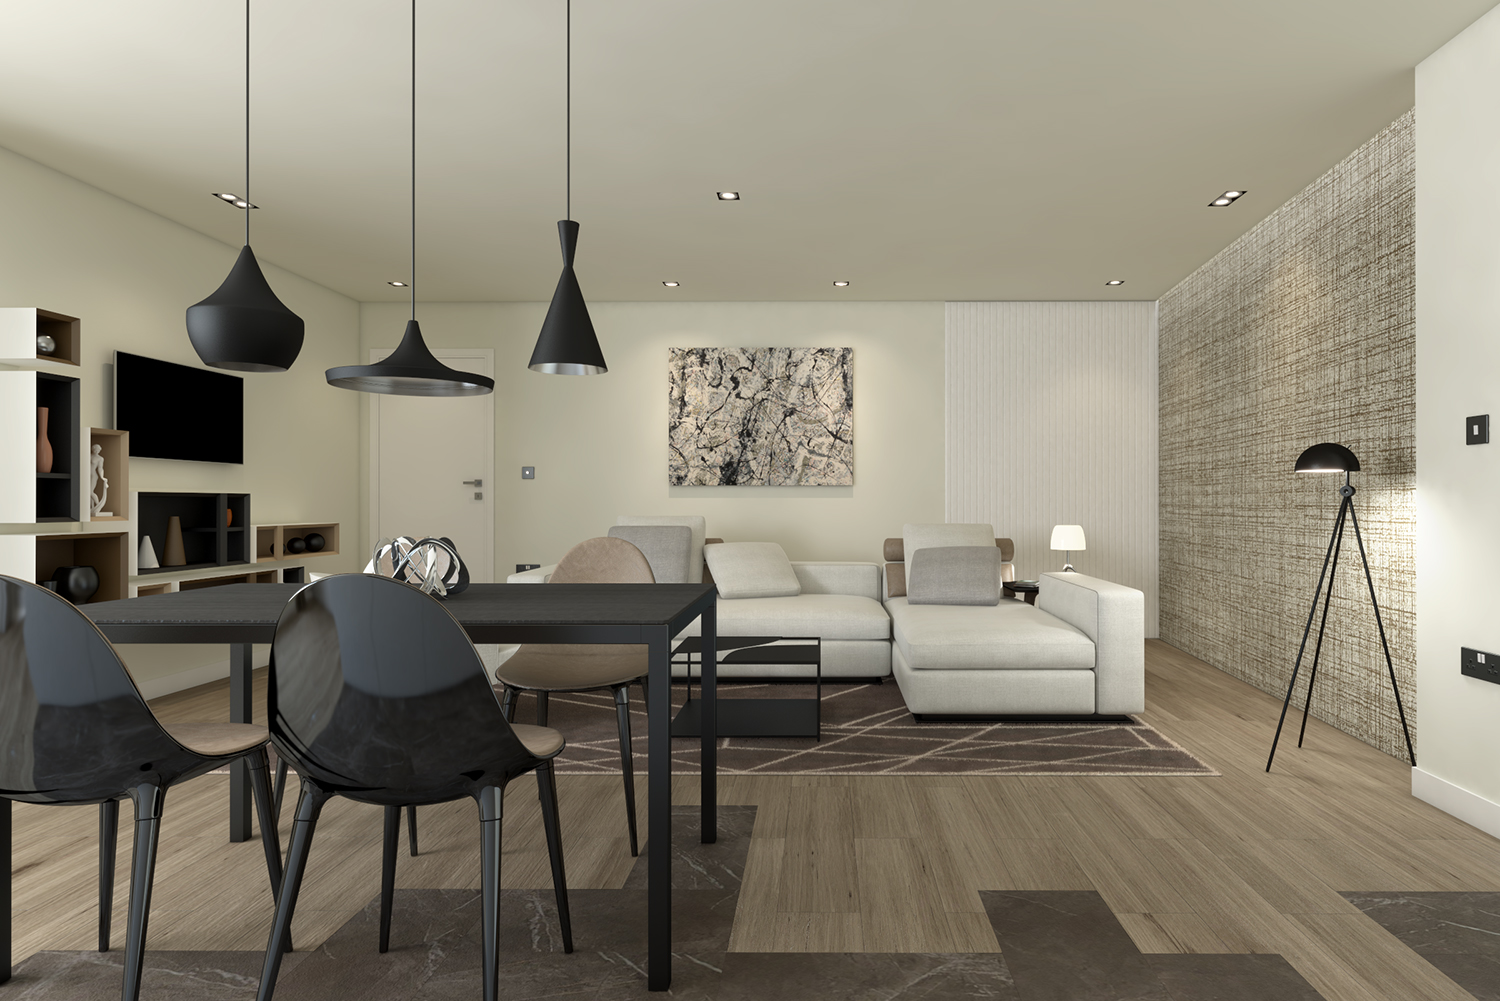 3d visualiser interior design alessandro gencarelli for 3d interior design websites